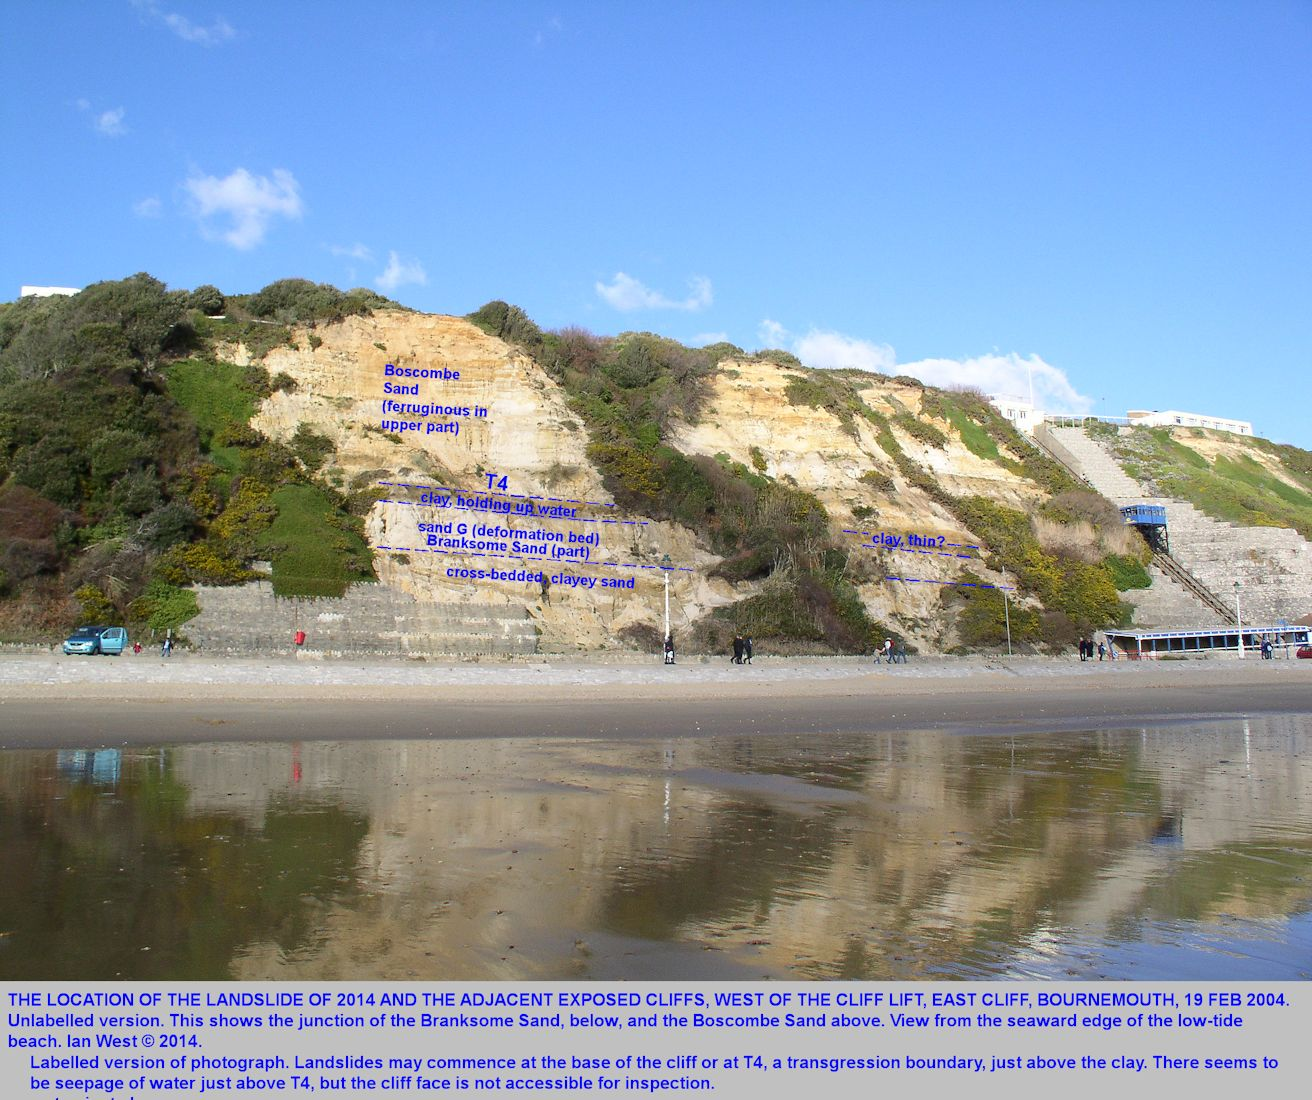 The cliff location, as seen from the low tide mark in 2004, of the landslide site of 2014, East Cliff, Bournemouth, Dorset, labelled version